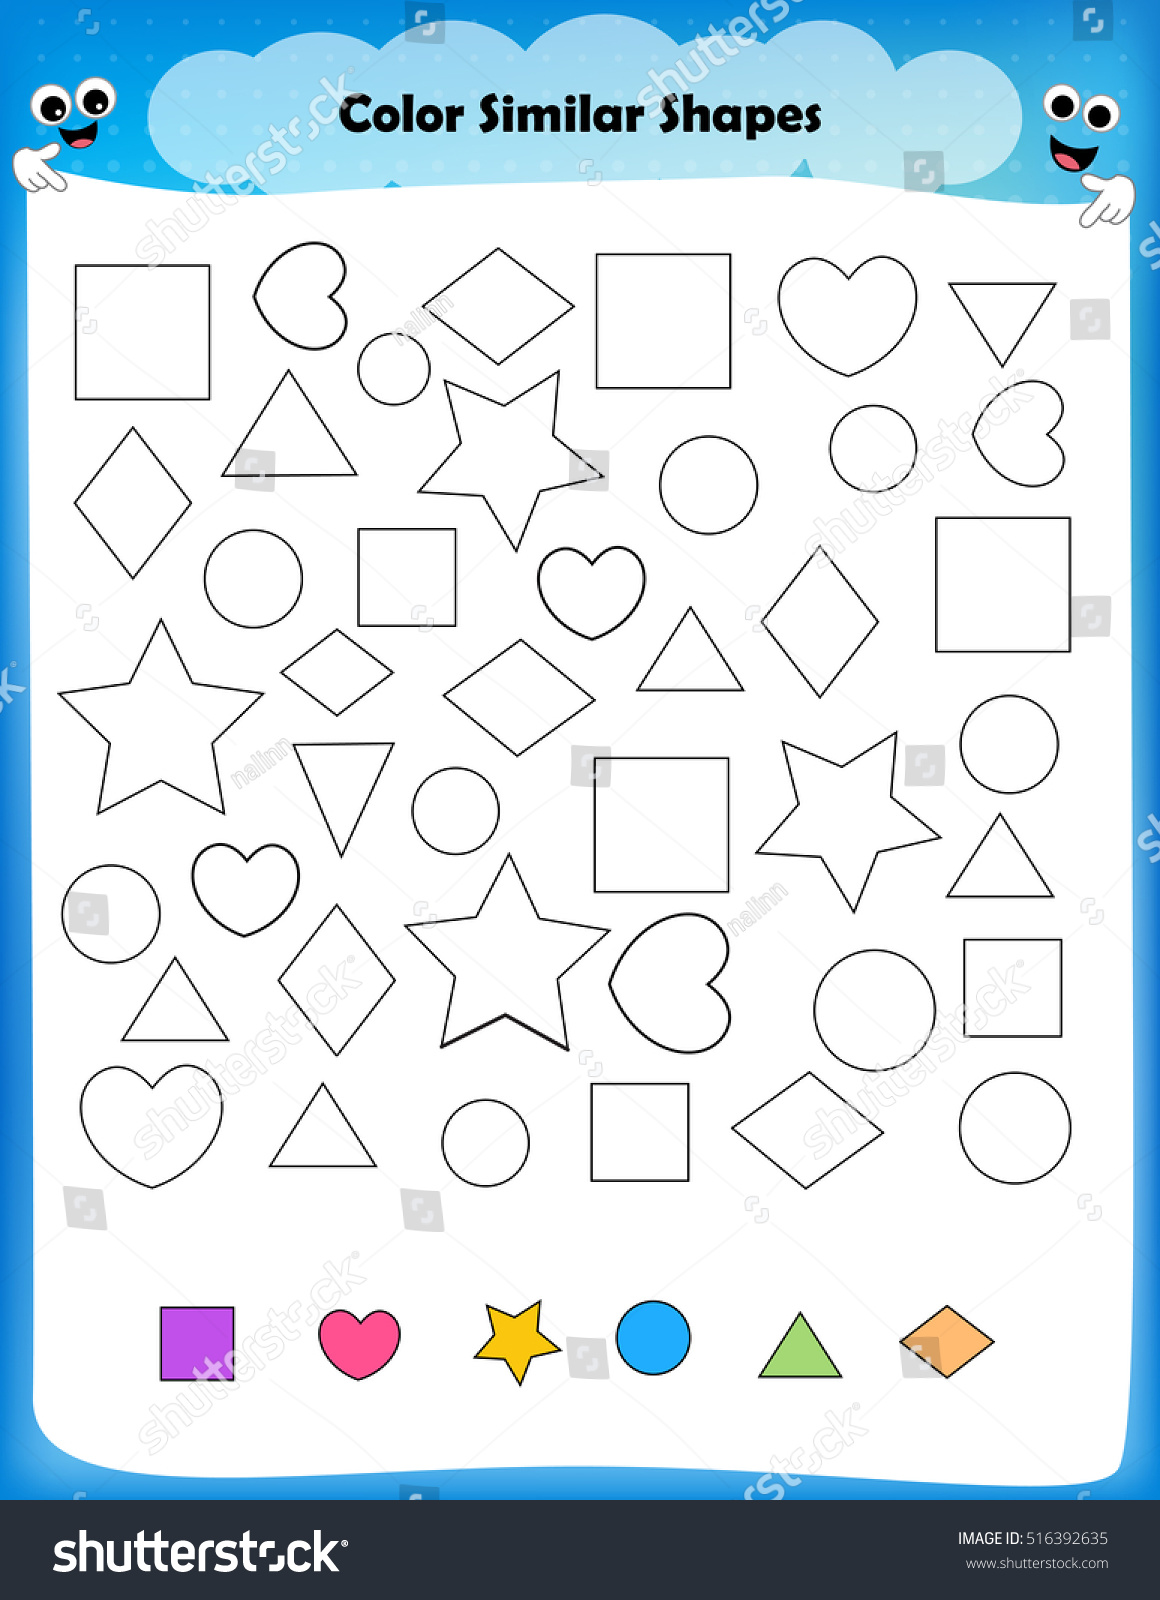 Worksheet Color Similar Shapes Worksheet Preschool Stock